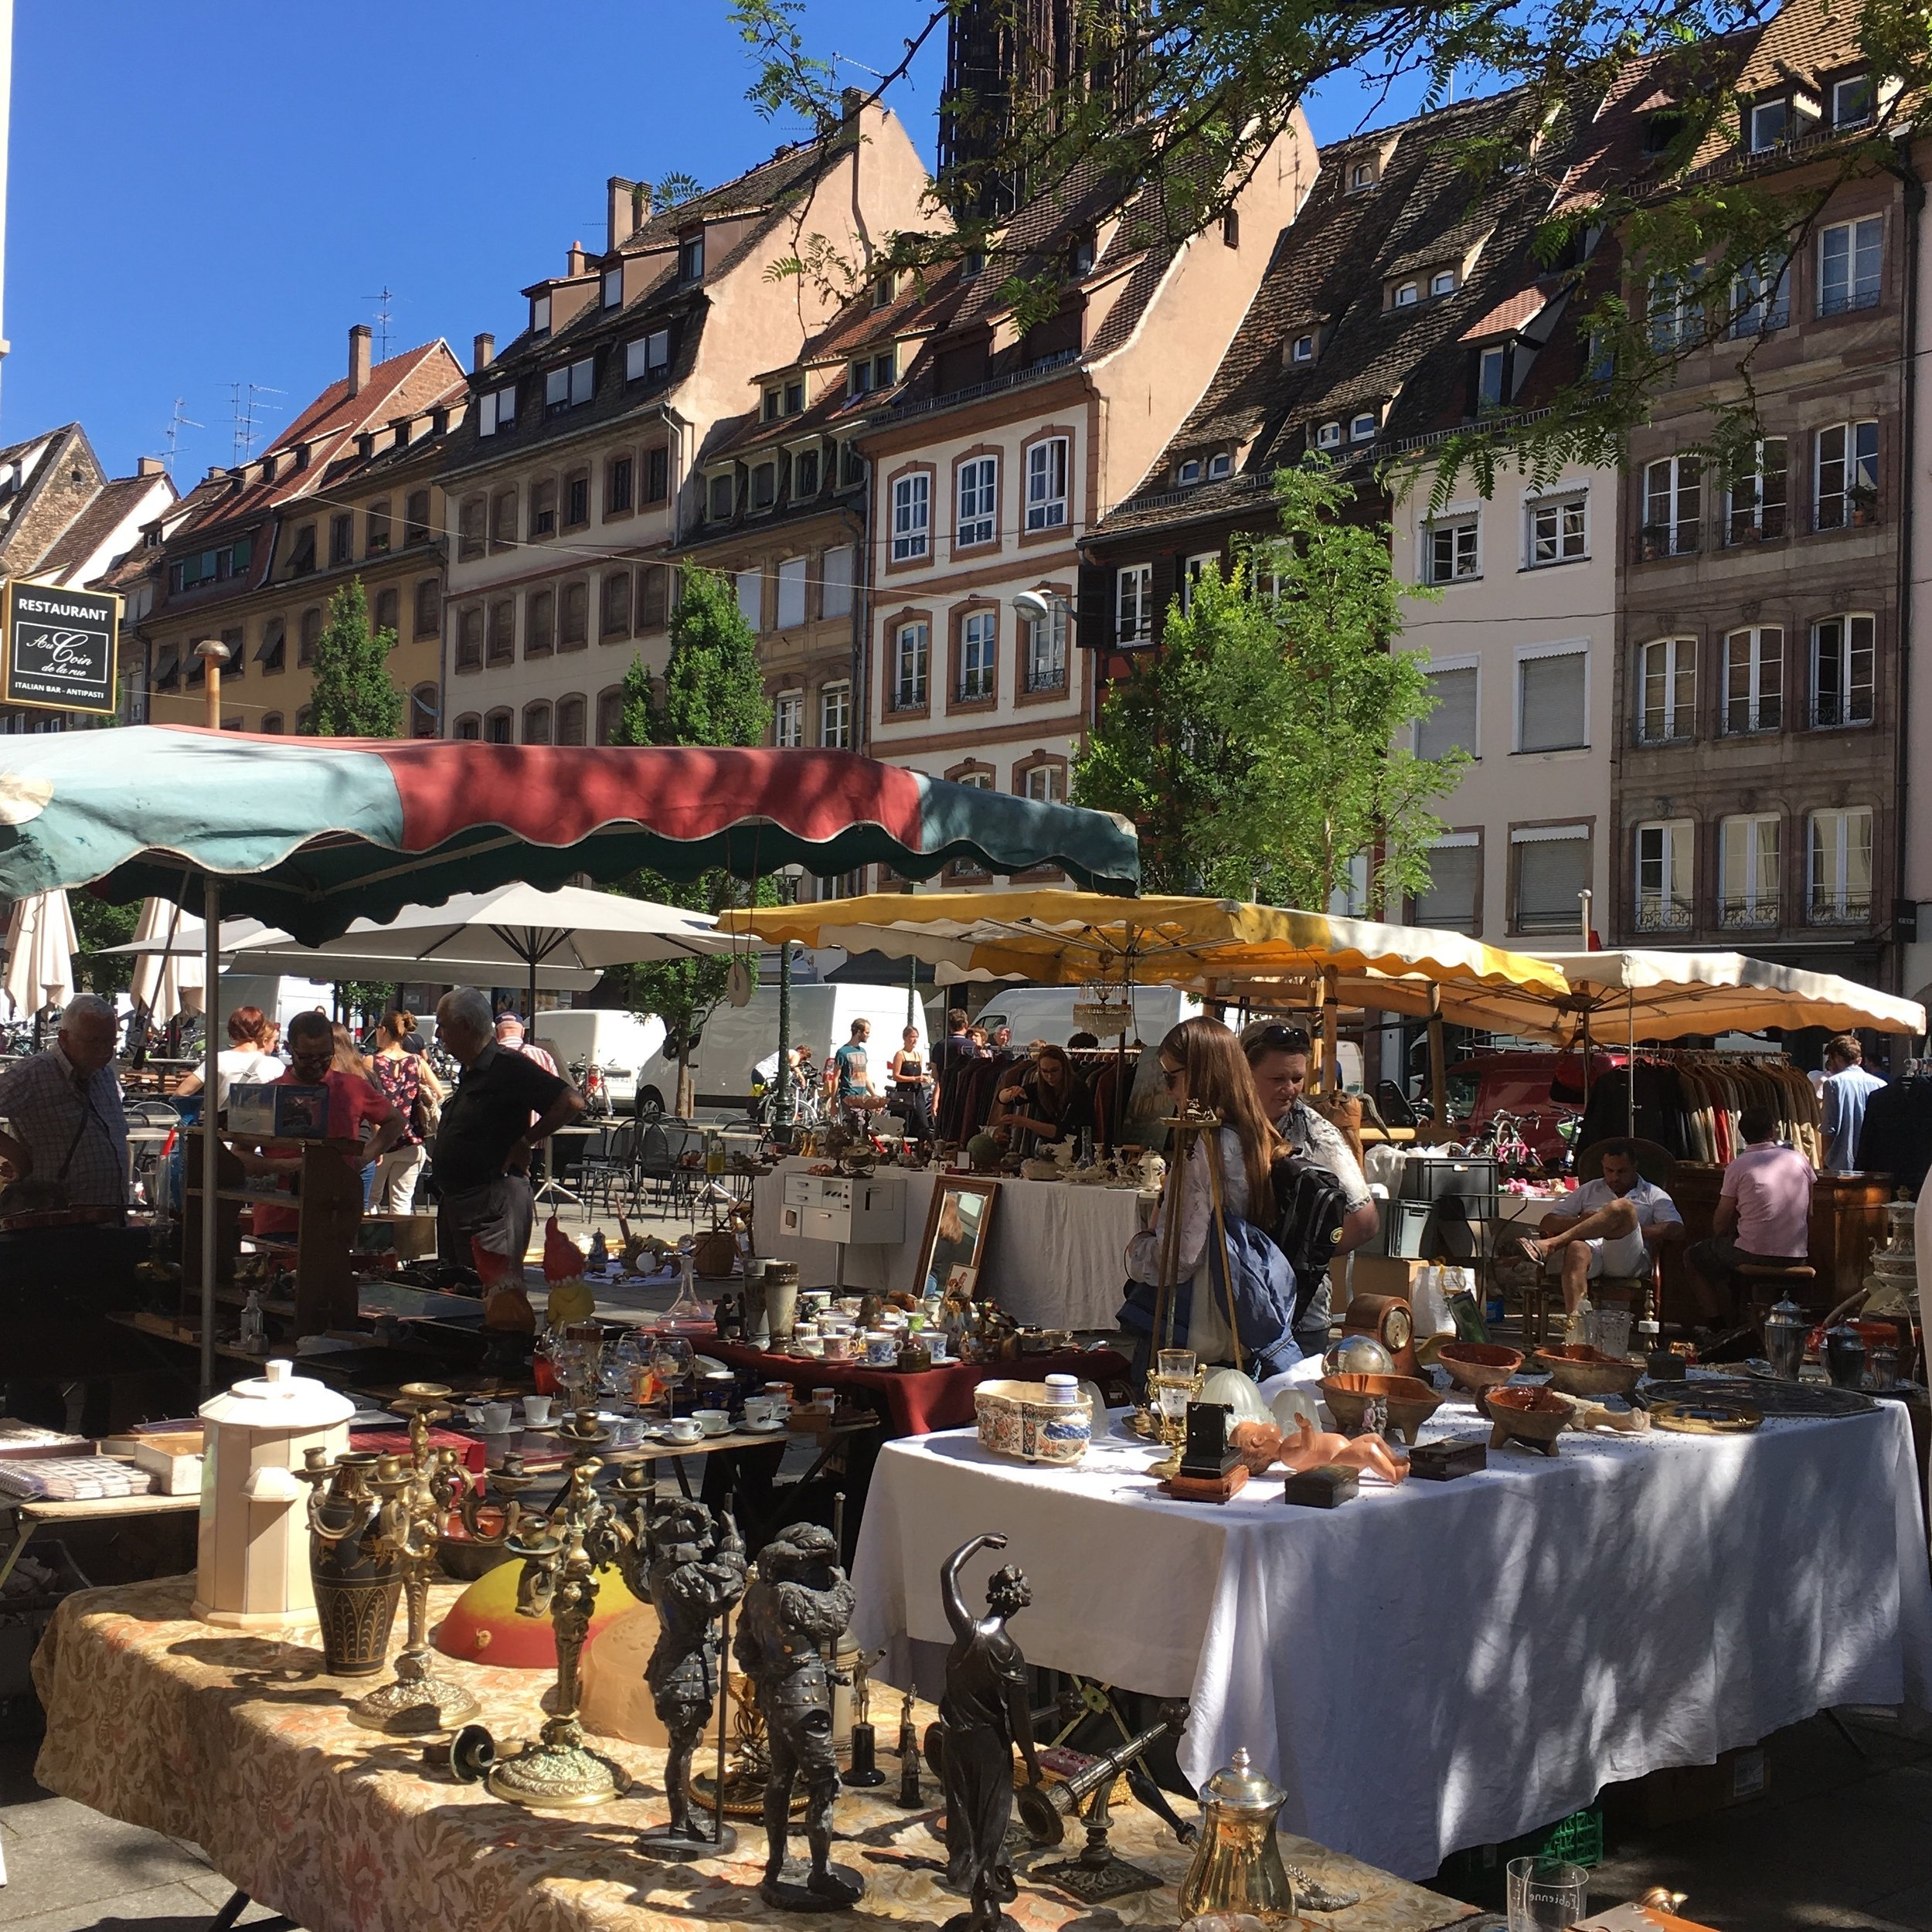 You can find a lively brocante each Wednesday and Saturday morning in Strasbourg. Here is where I hunt for all my Alsatian treasures. I know the vendors and it is a morning of socializing as much as it is hunting for the perfect finds for my online shop.